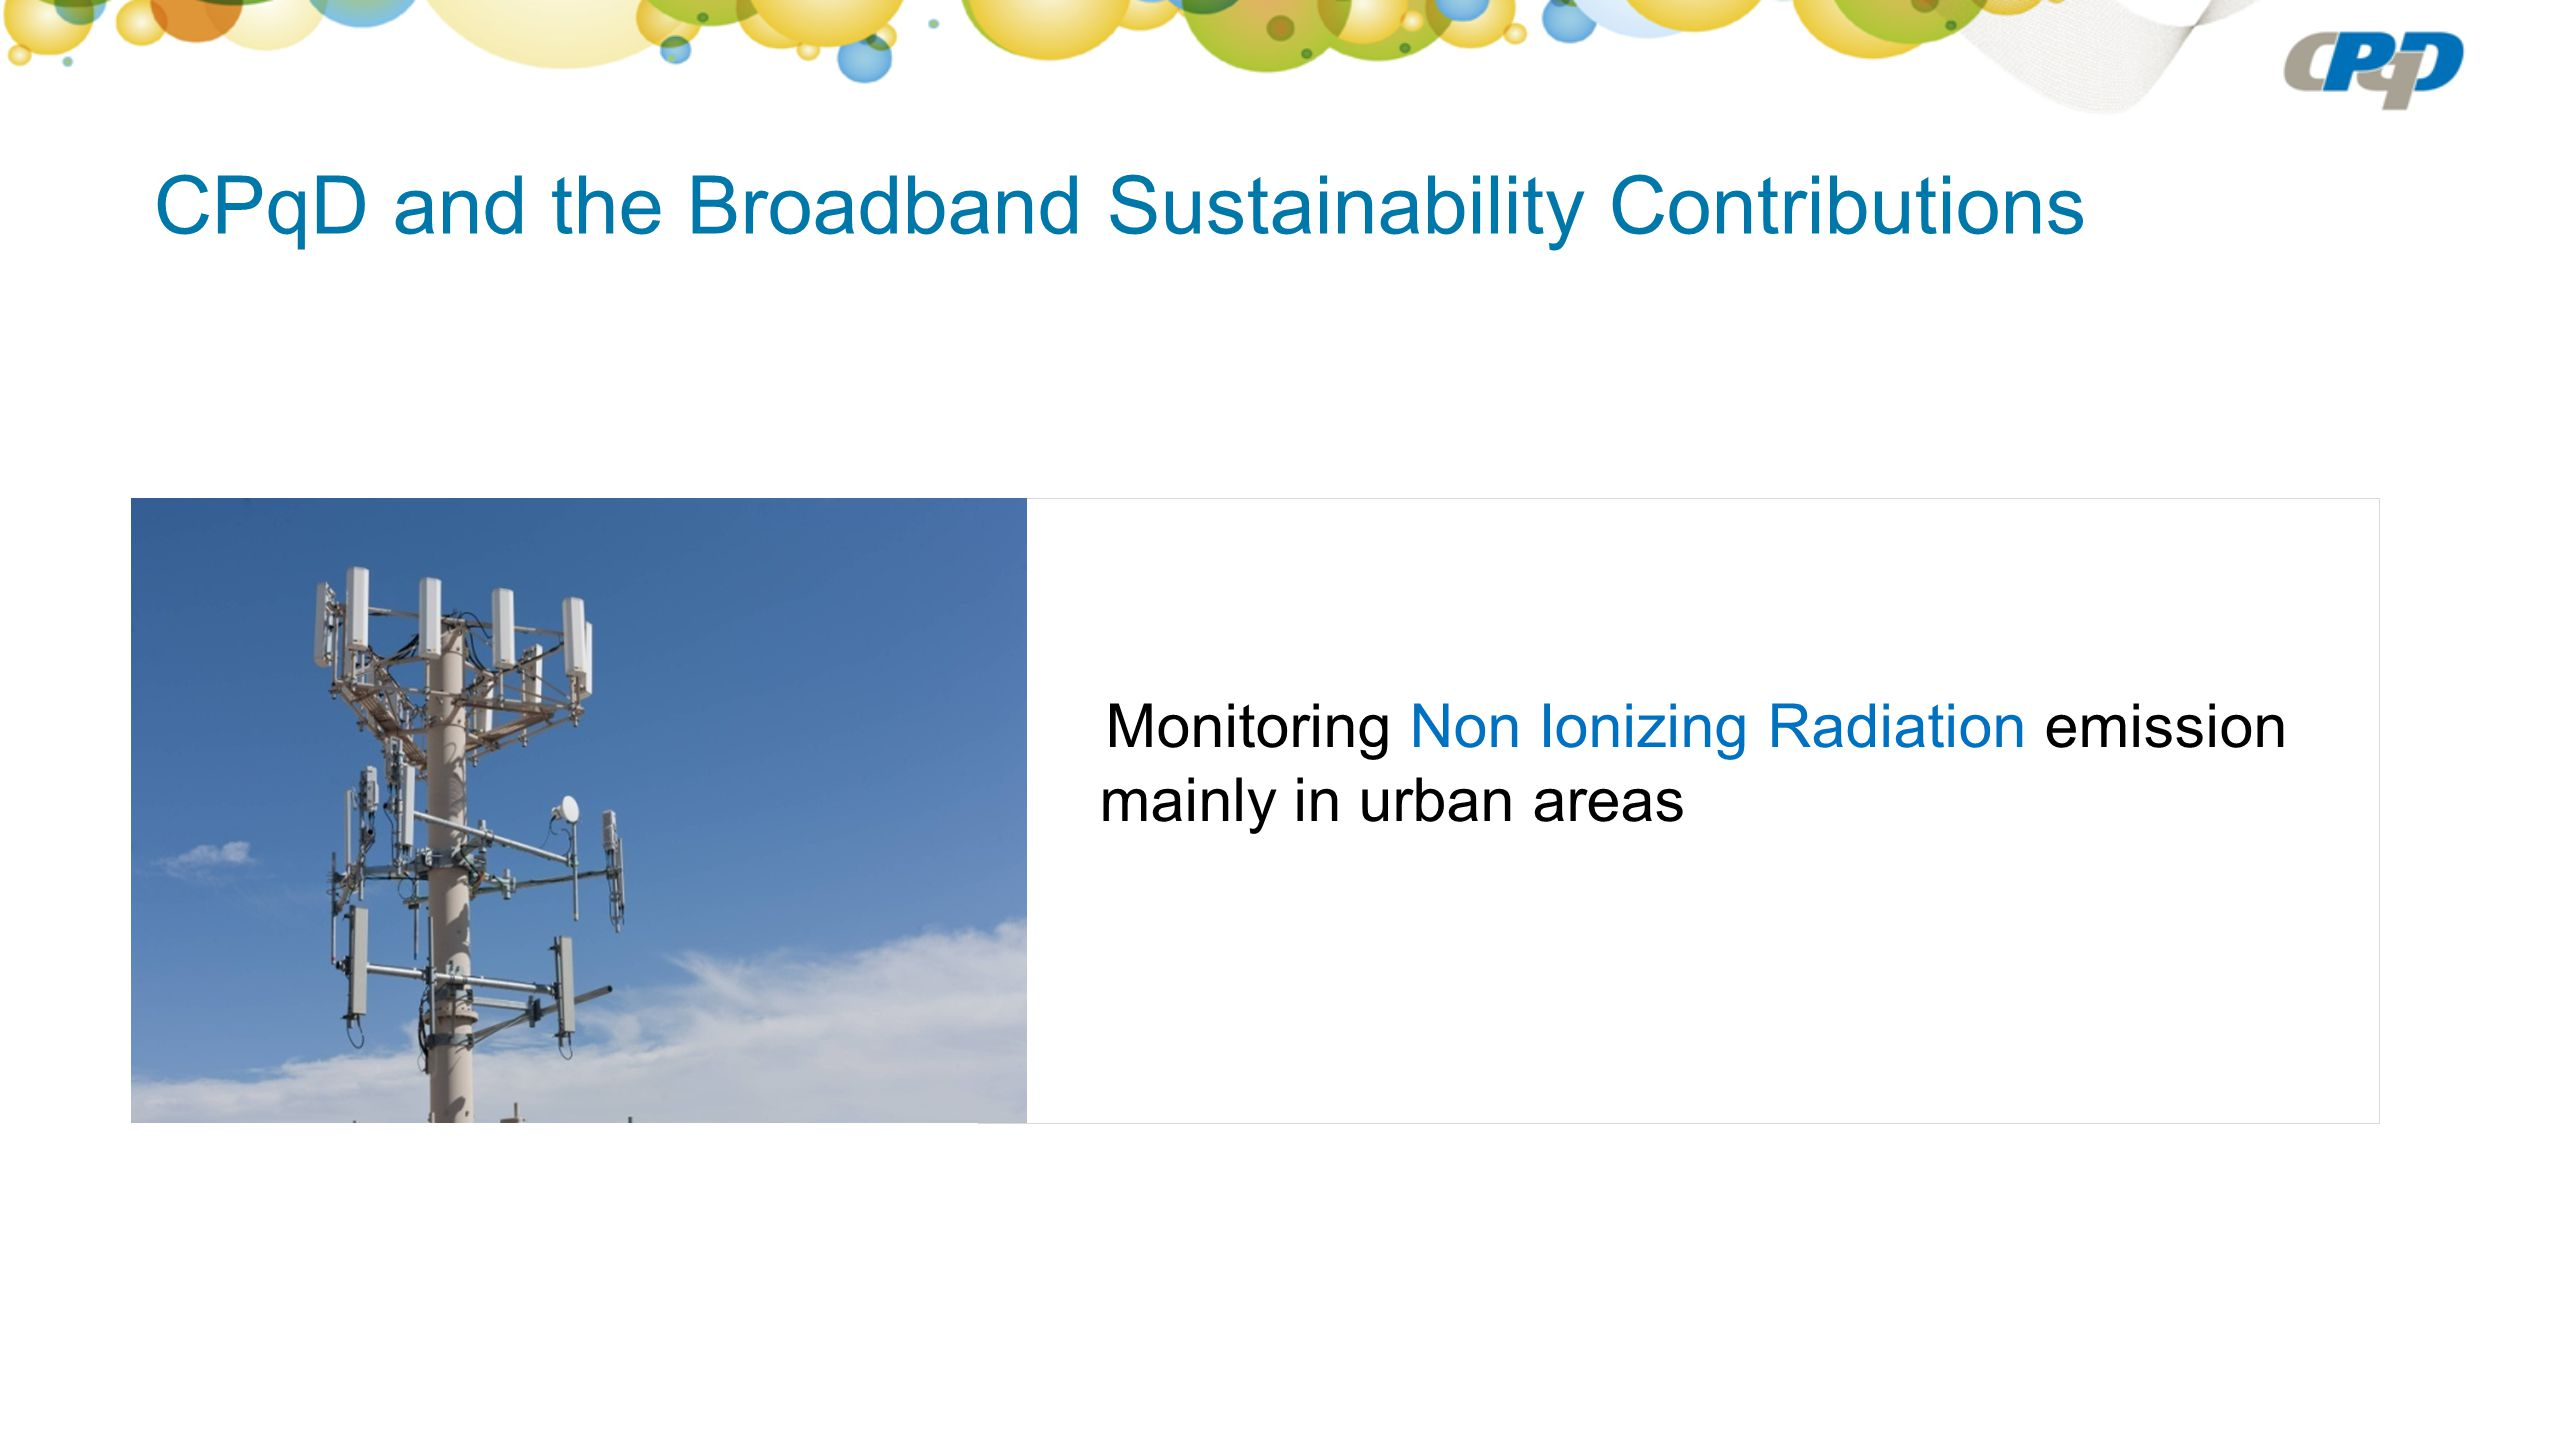 CPqD and the Broadband Sustainability Contributions Monitoring Non Ionizing Radiation emission mainly in urban areas